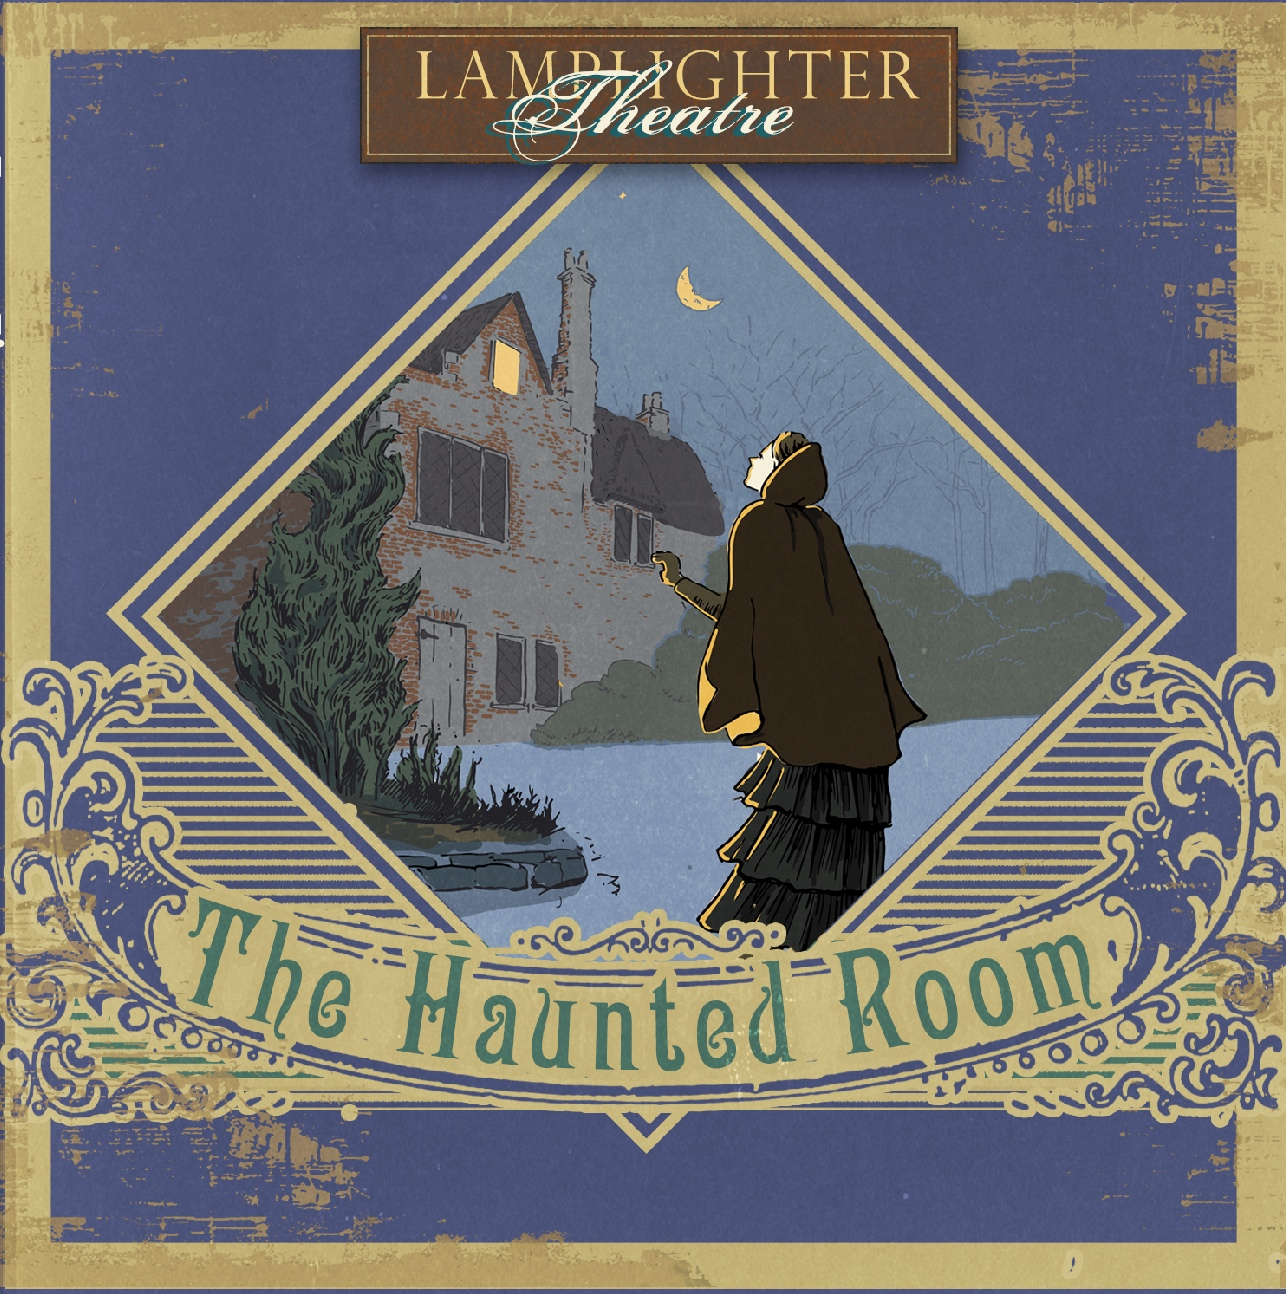 Haunted Room Lamplighter Theatre Audio